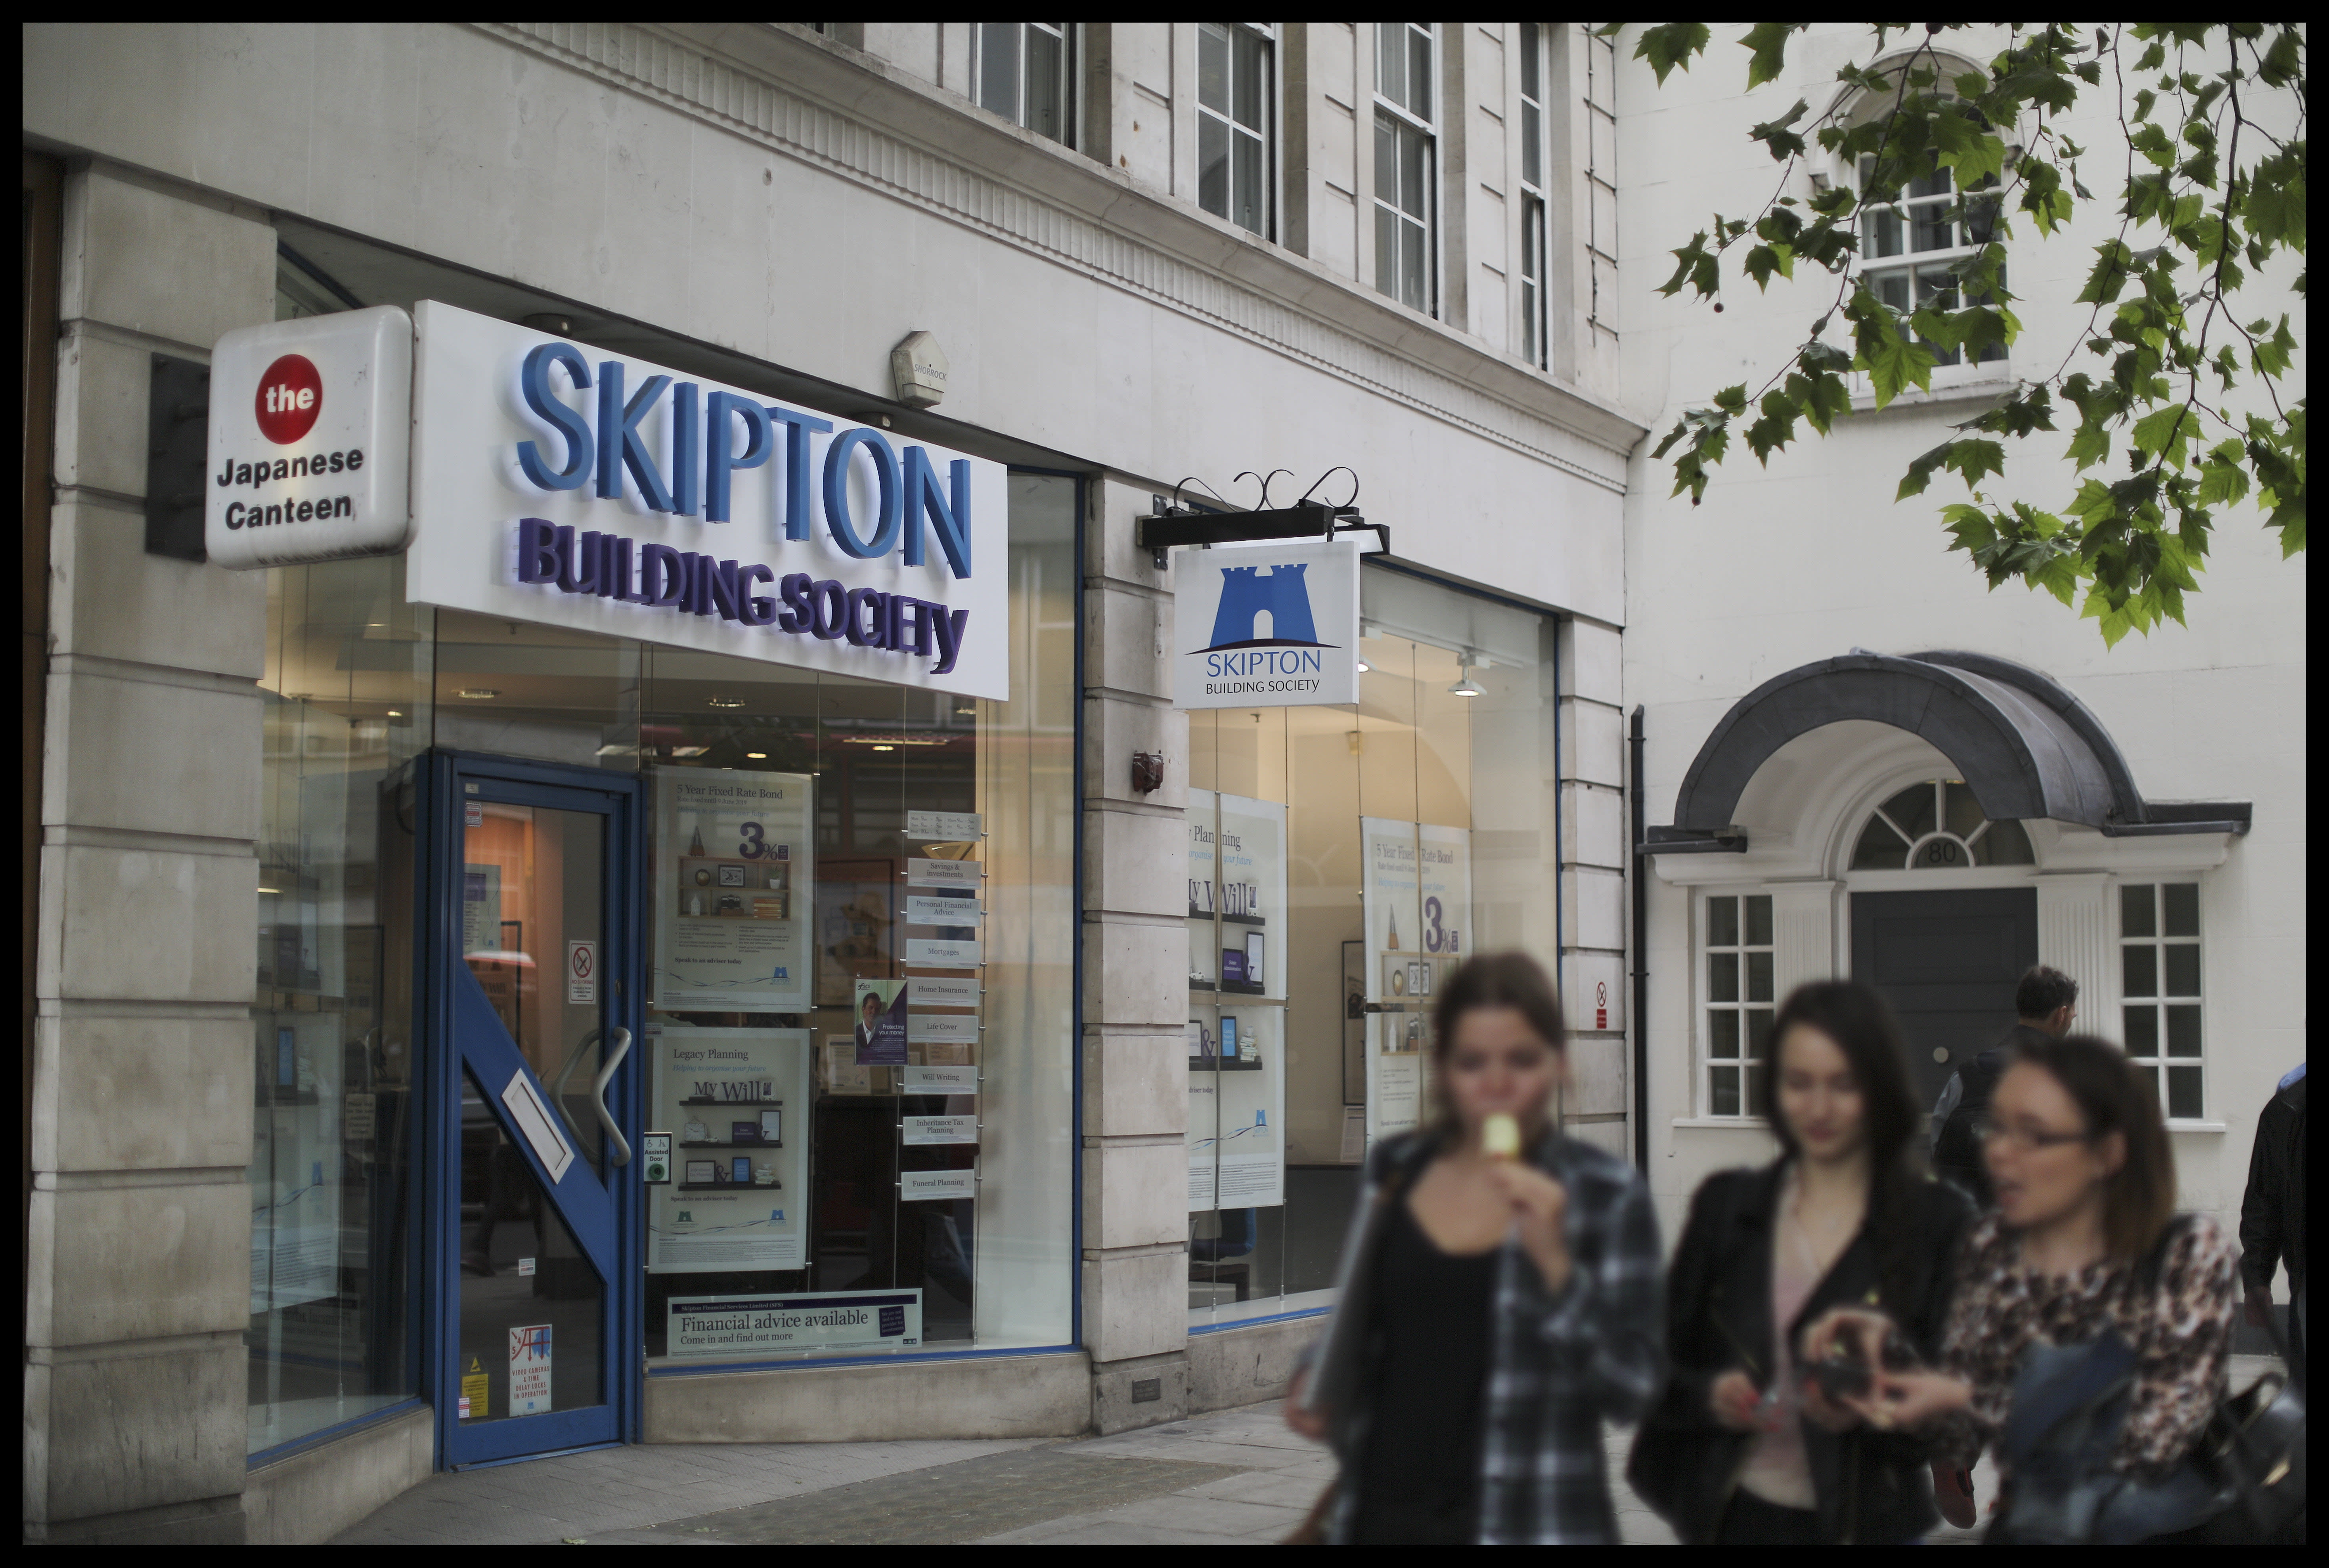 Skipton launches 'special edition' savings accounts